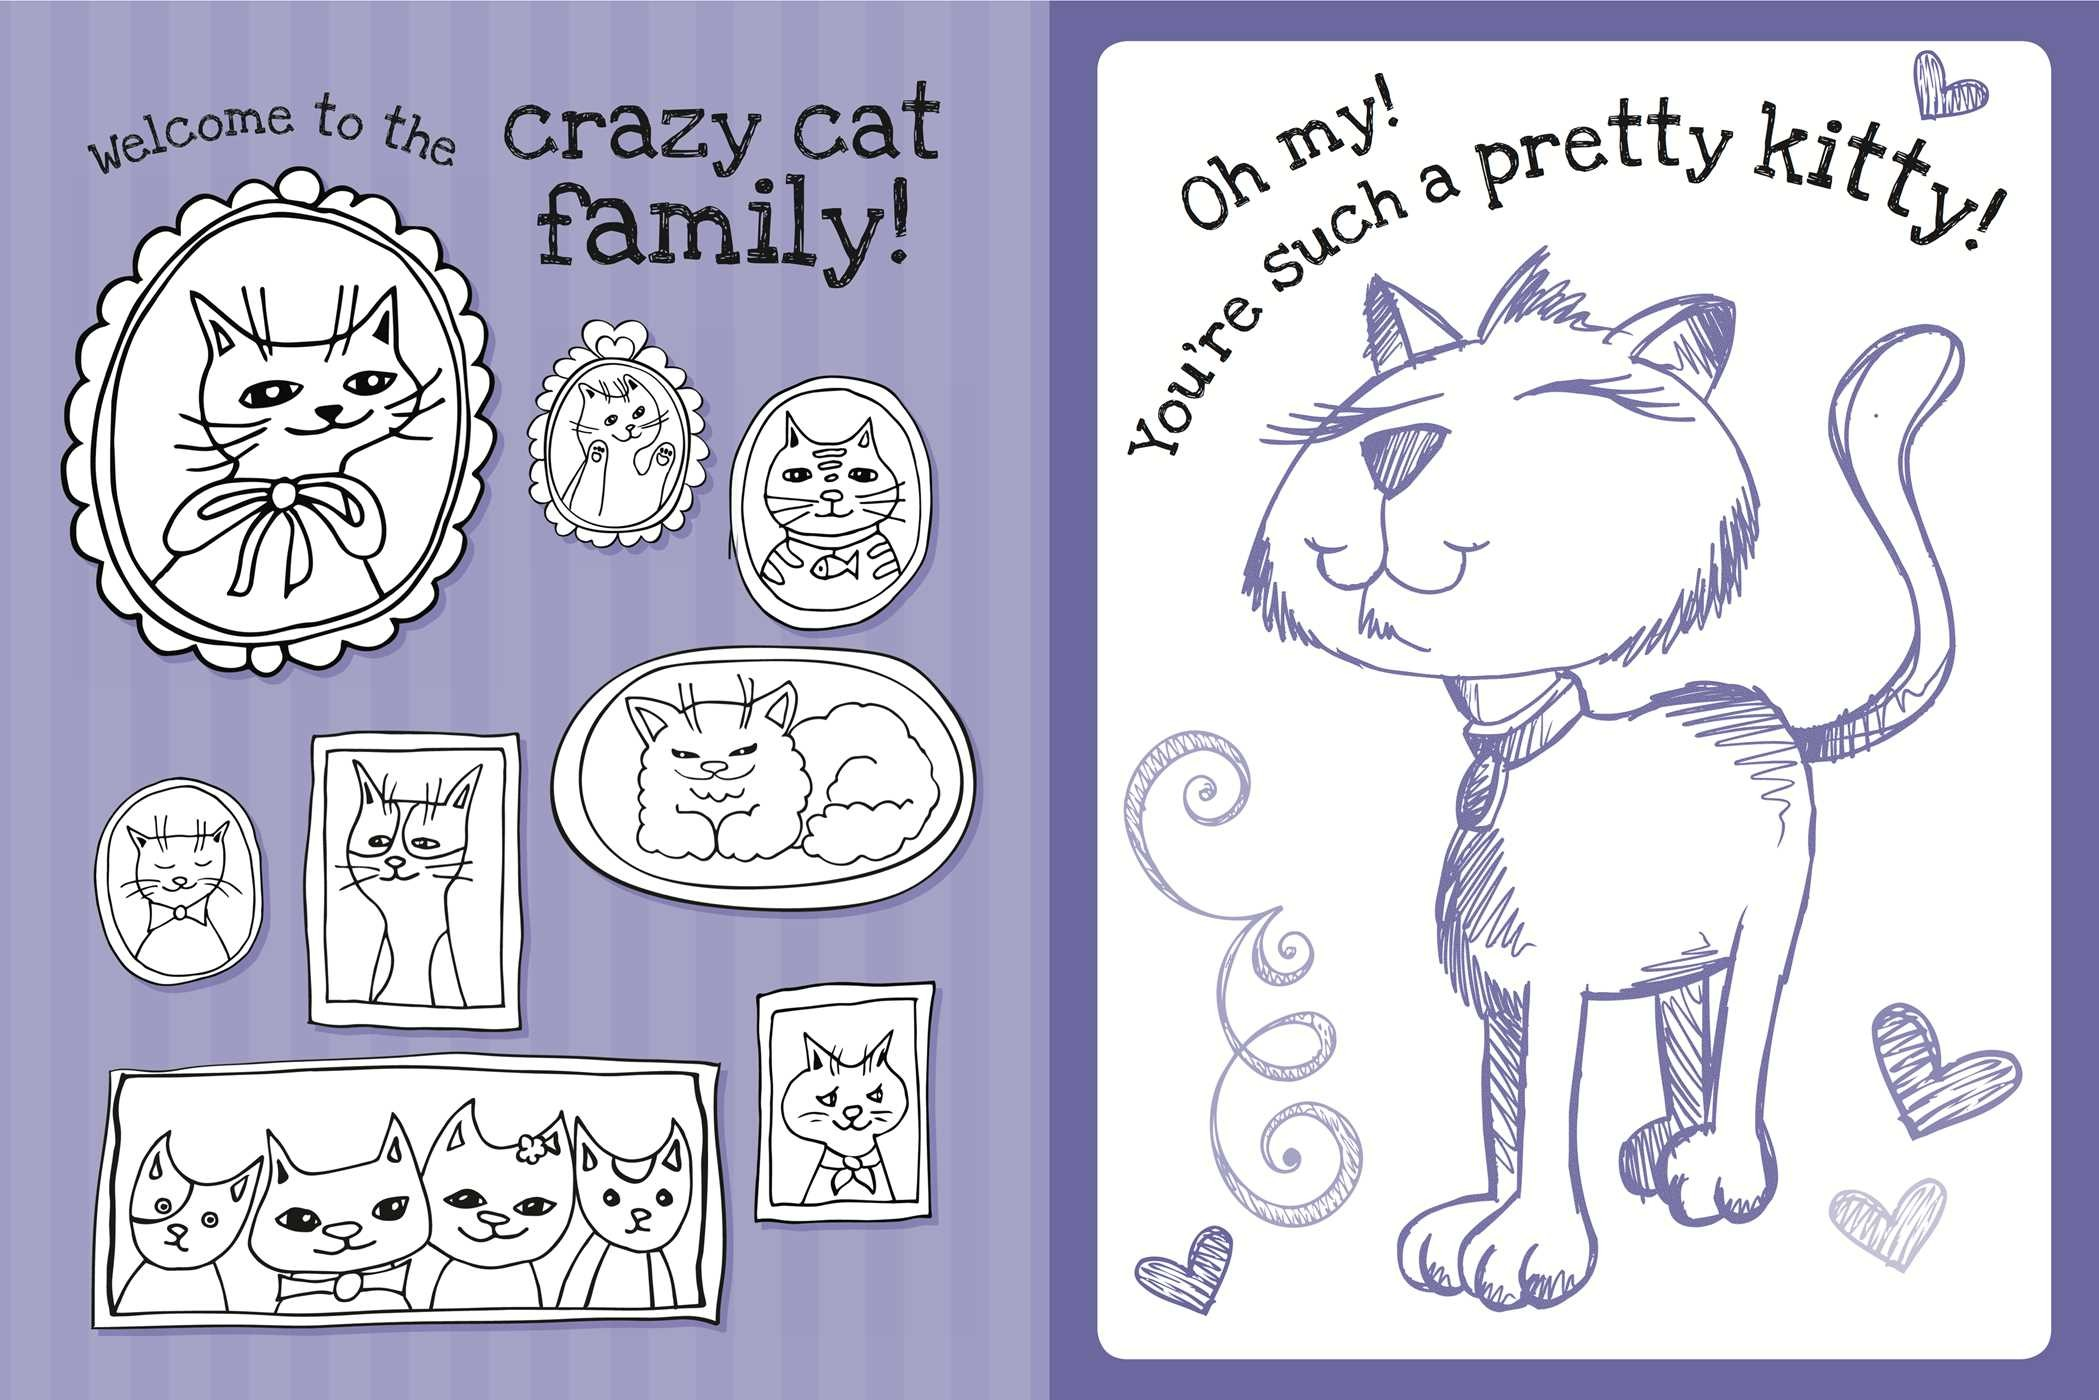 Coloring book kittens -  The Too Cute Coloring Book Kittens 9781499802061 In03